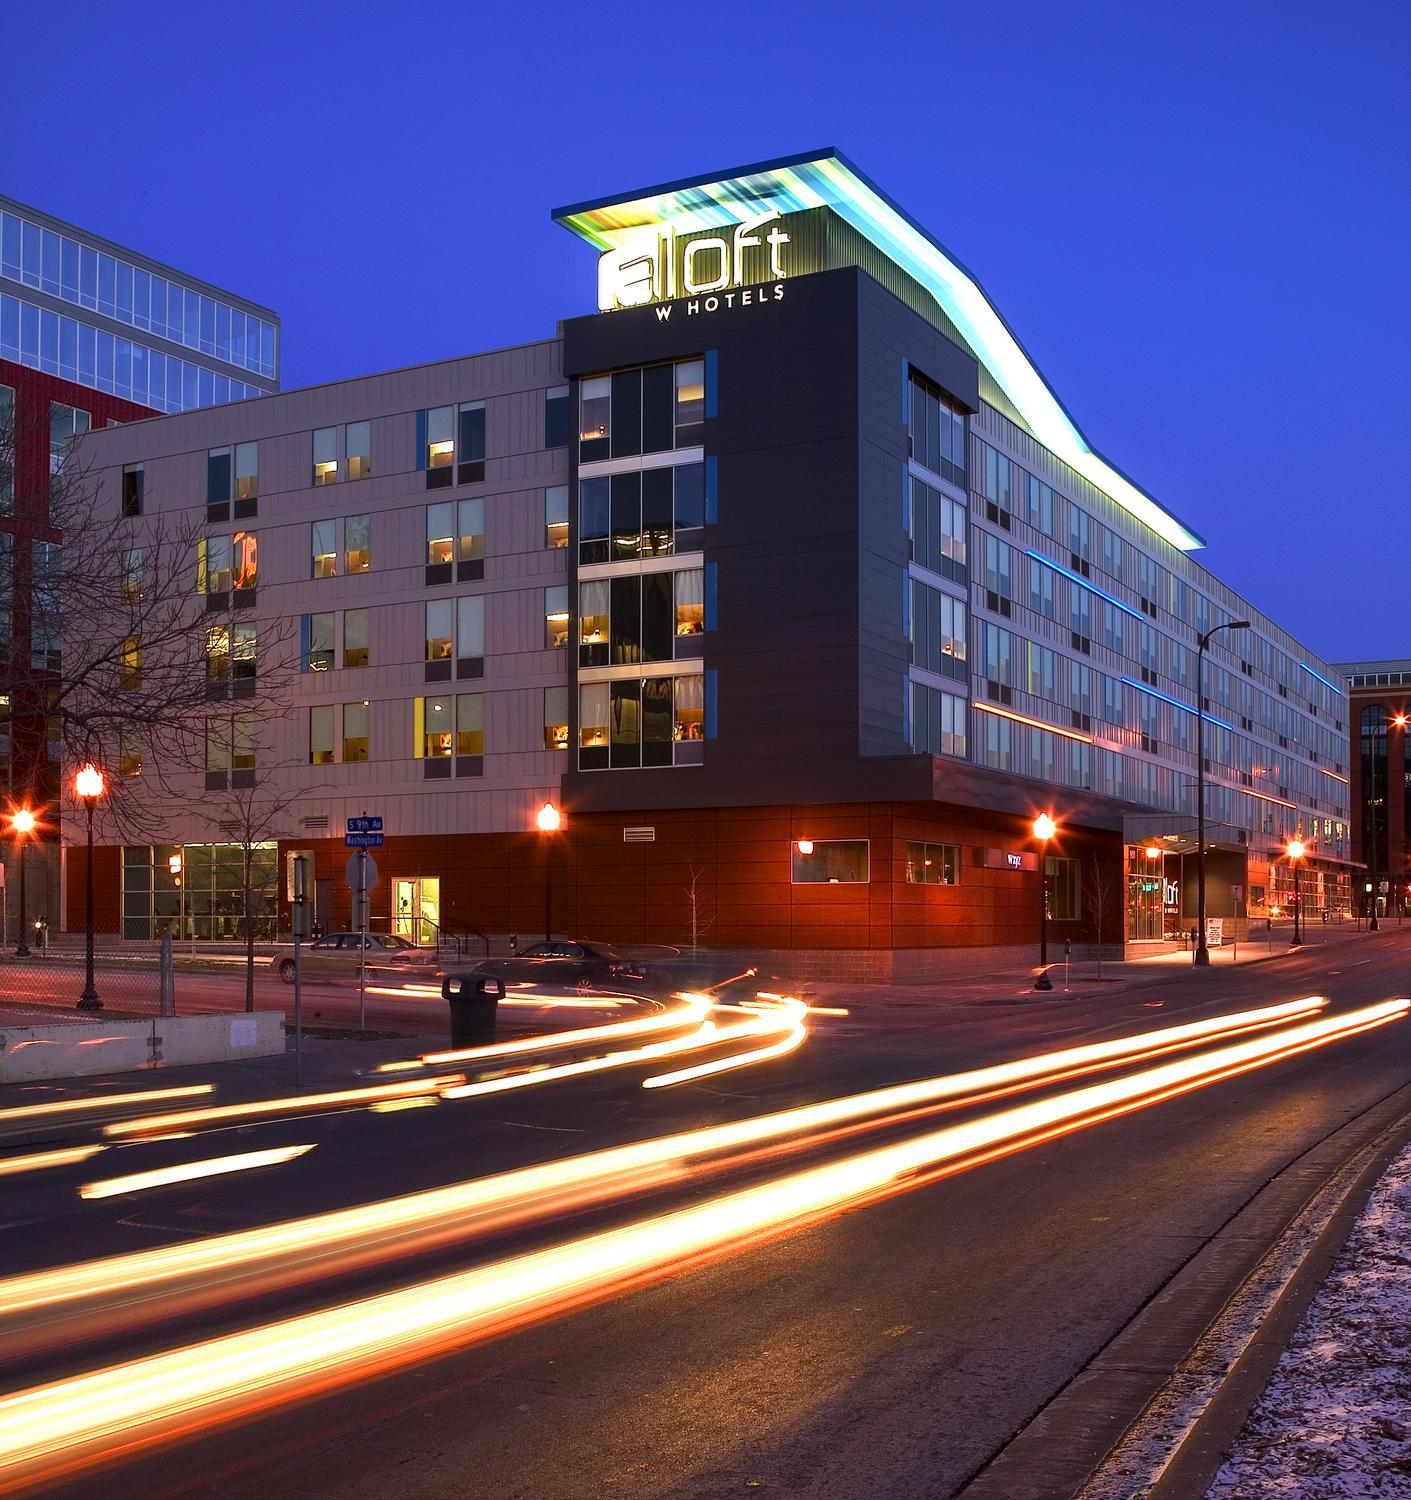 Nighttime view of the Aloft Hotel in Minneapolis, MN